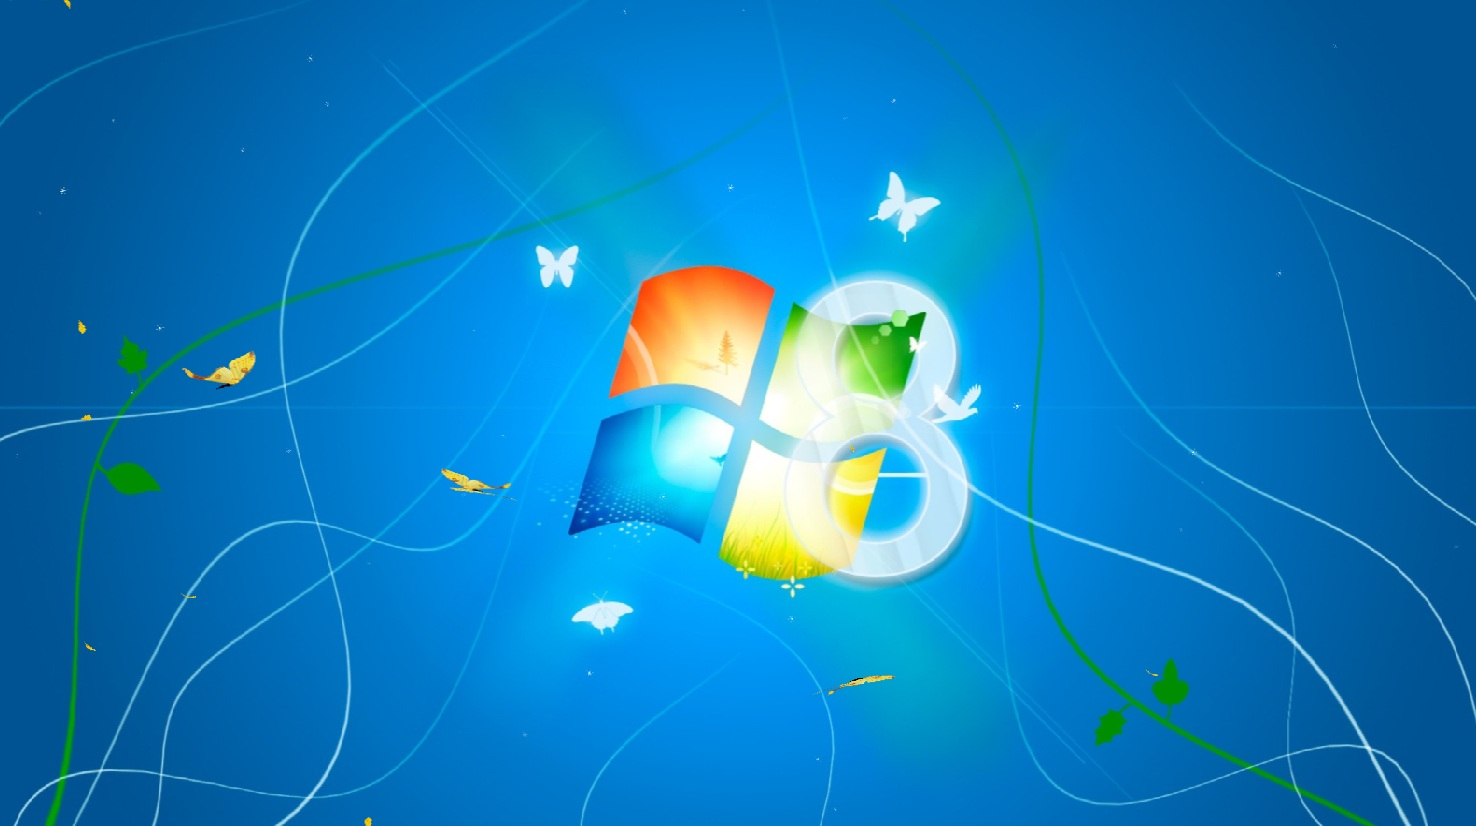 Windows 8 Animated Wallpaper